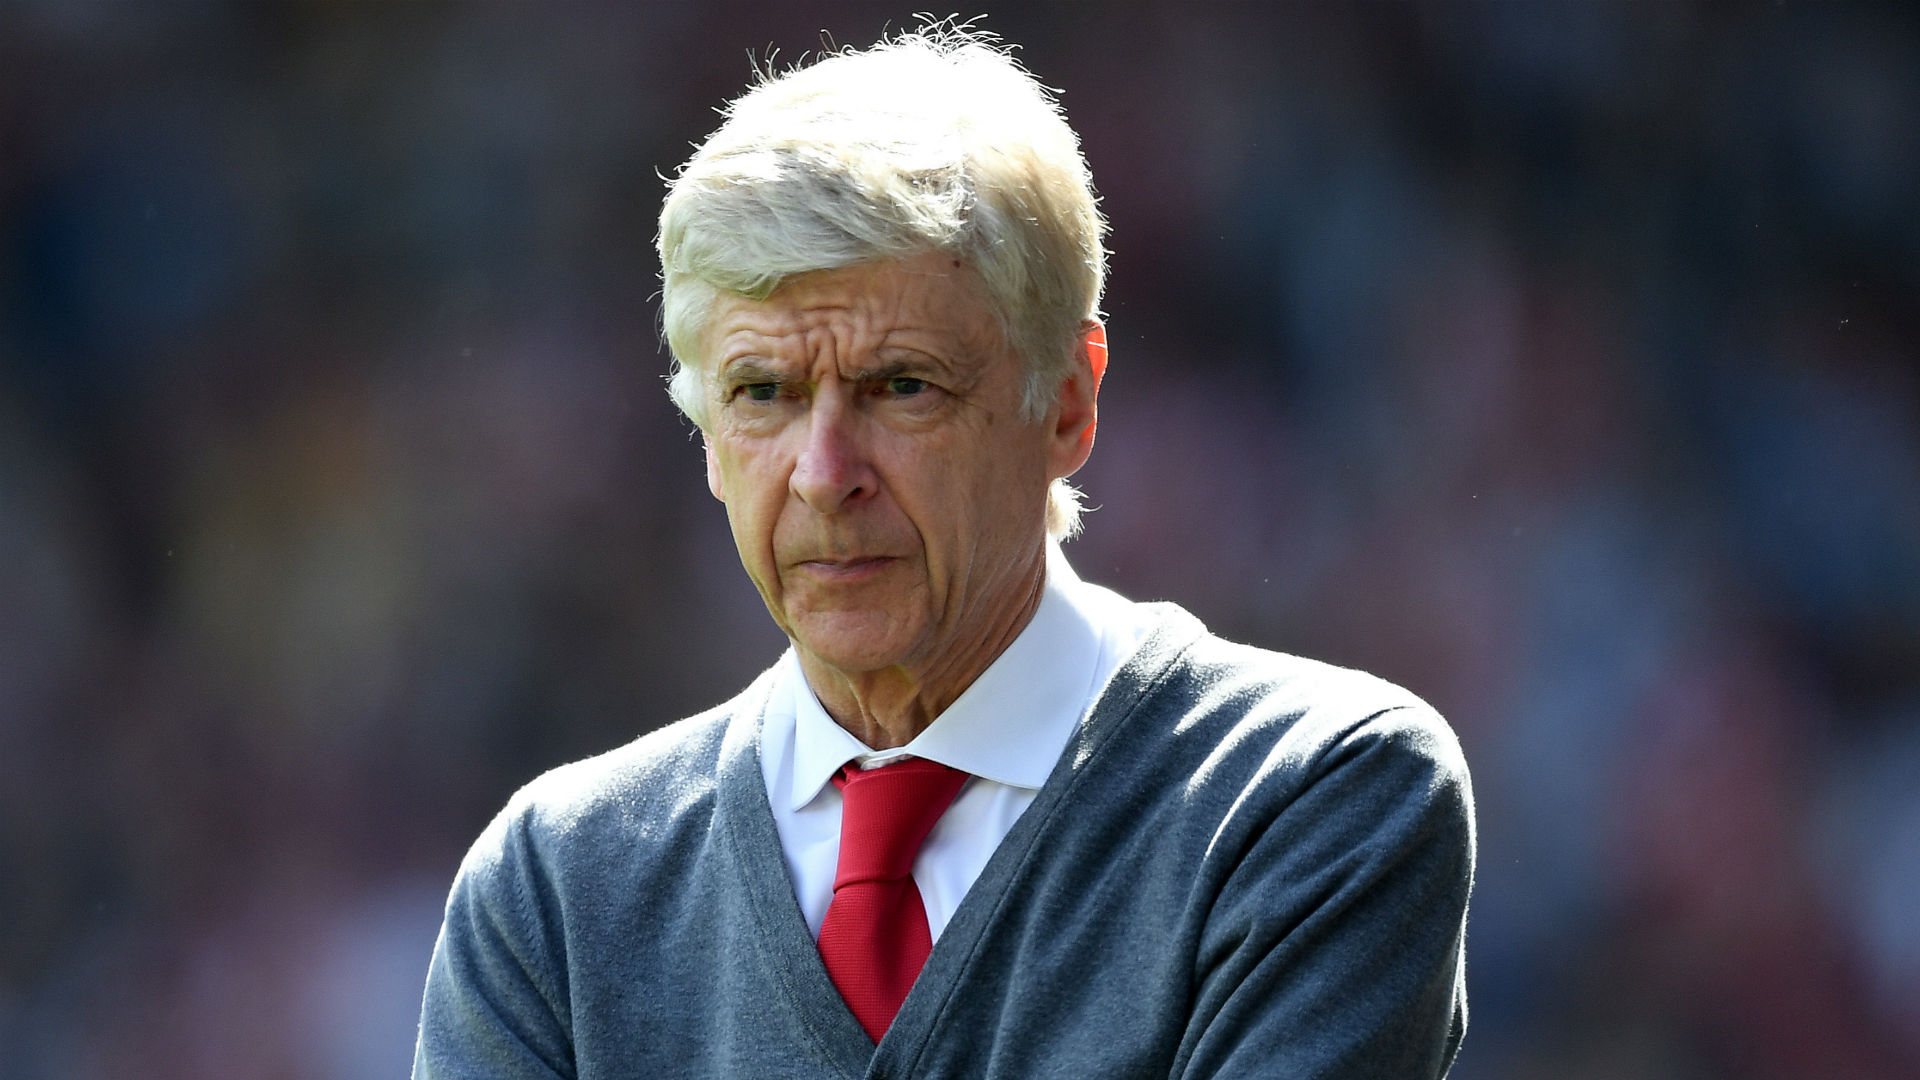 Wenger 'not in the running' for Bayern Munich job